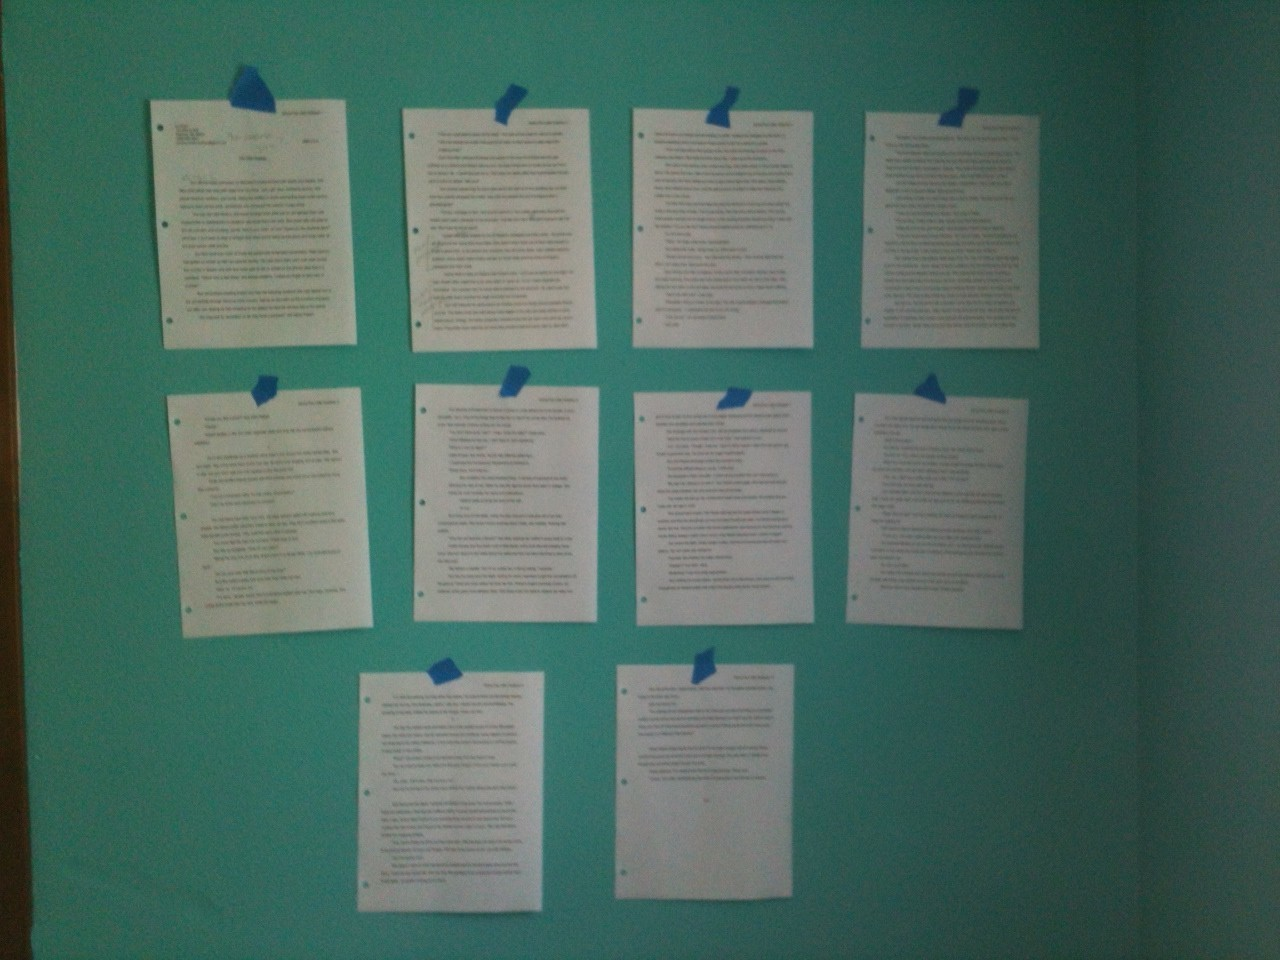 revision pages on wall